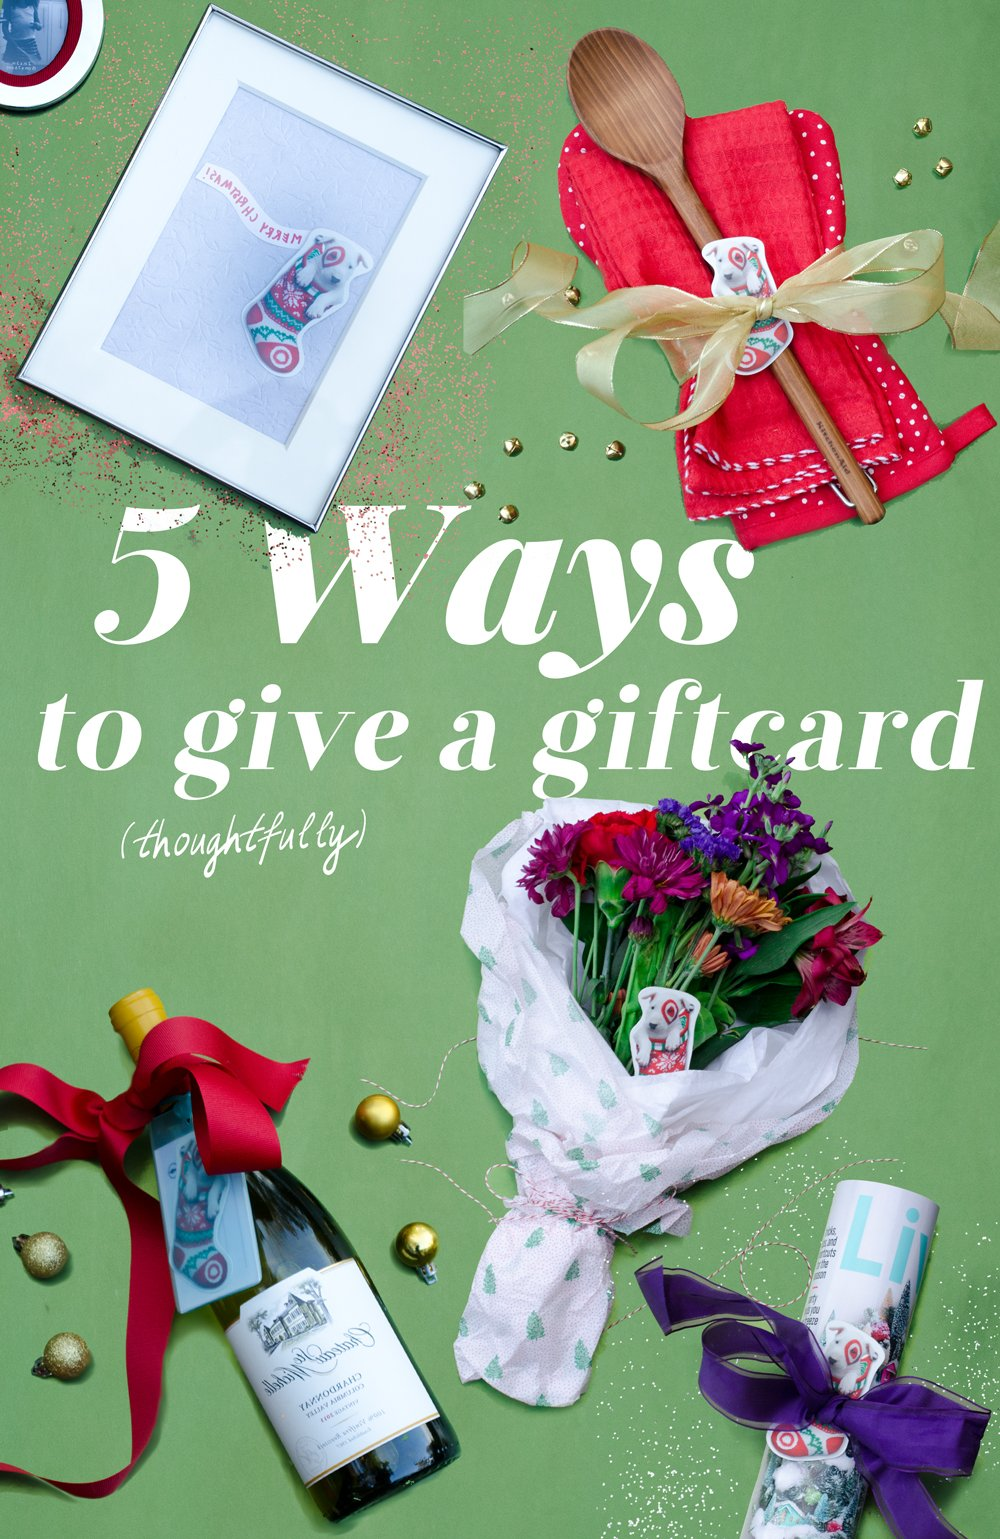 How to Give a Giftcard (Thoughtfully)   Thou Swell https://thouswell.com/